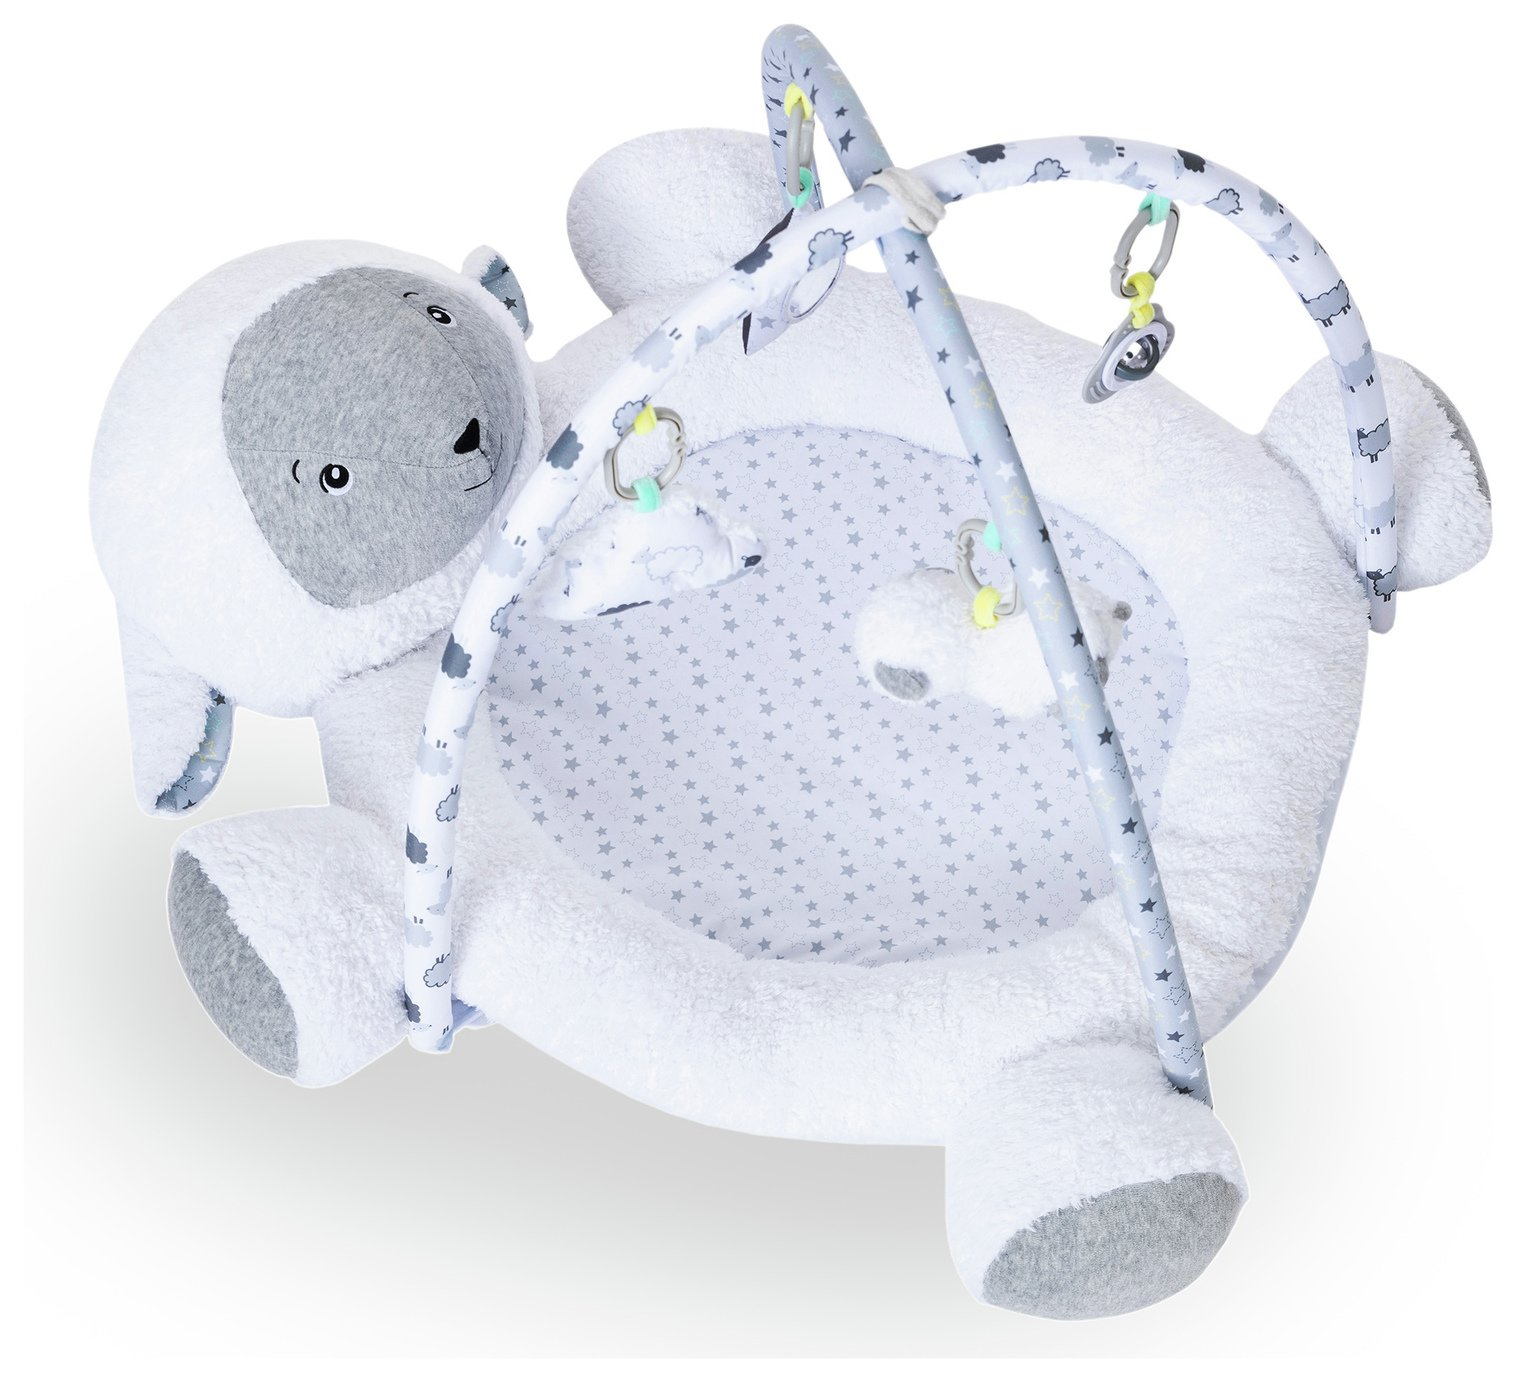 Cuggl 3D Playgym with Hanging Accessories - Sheep